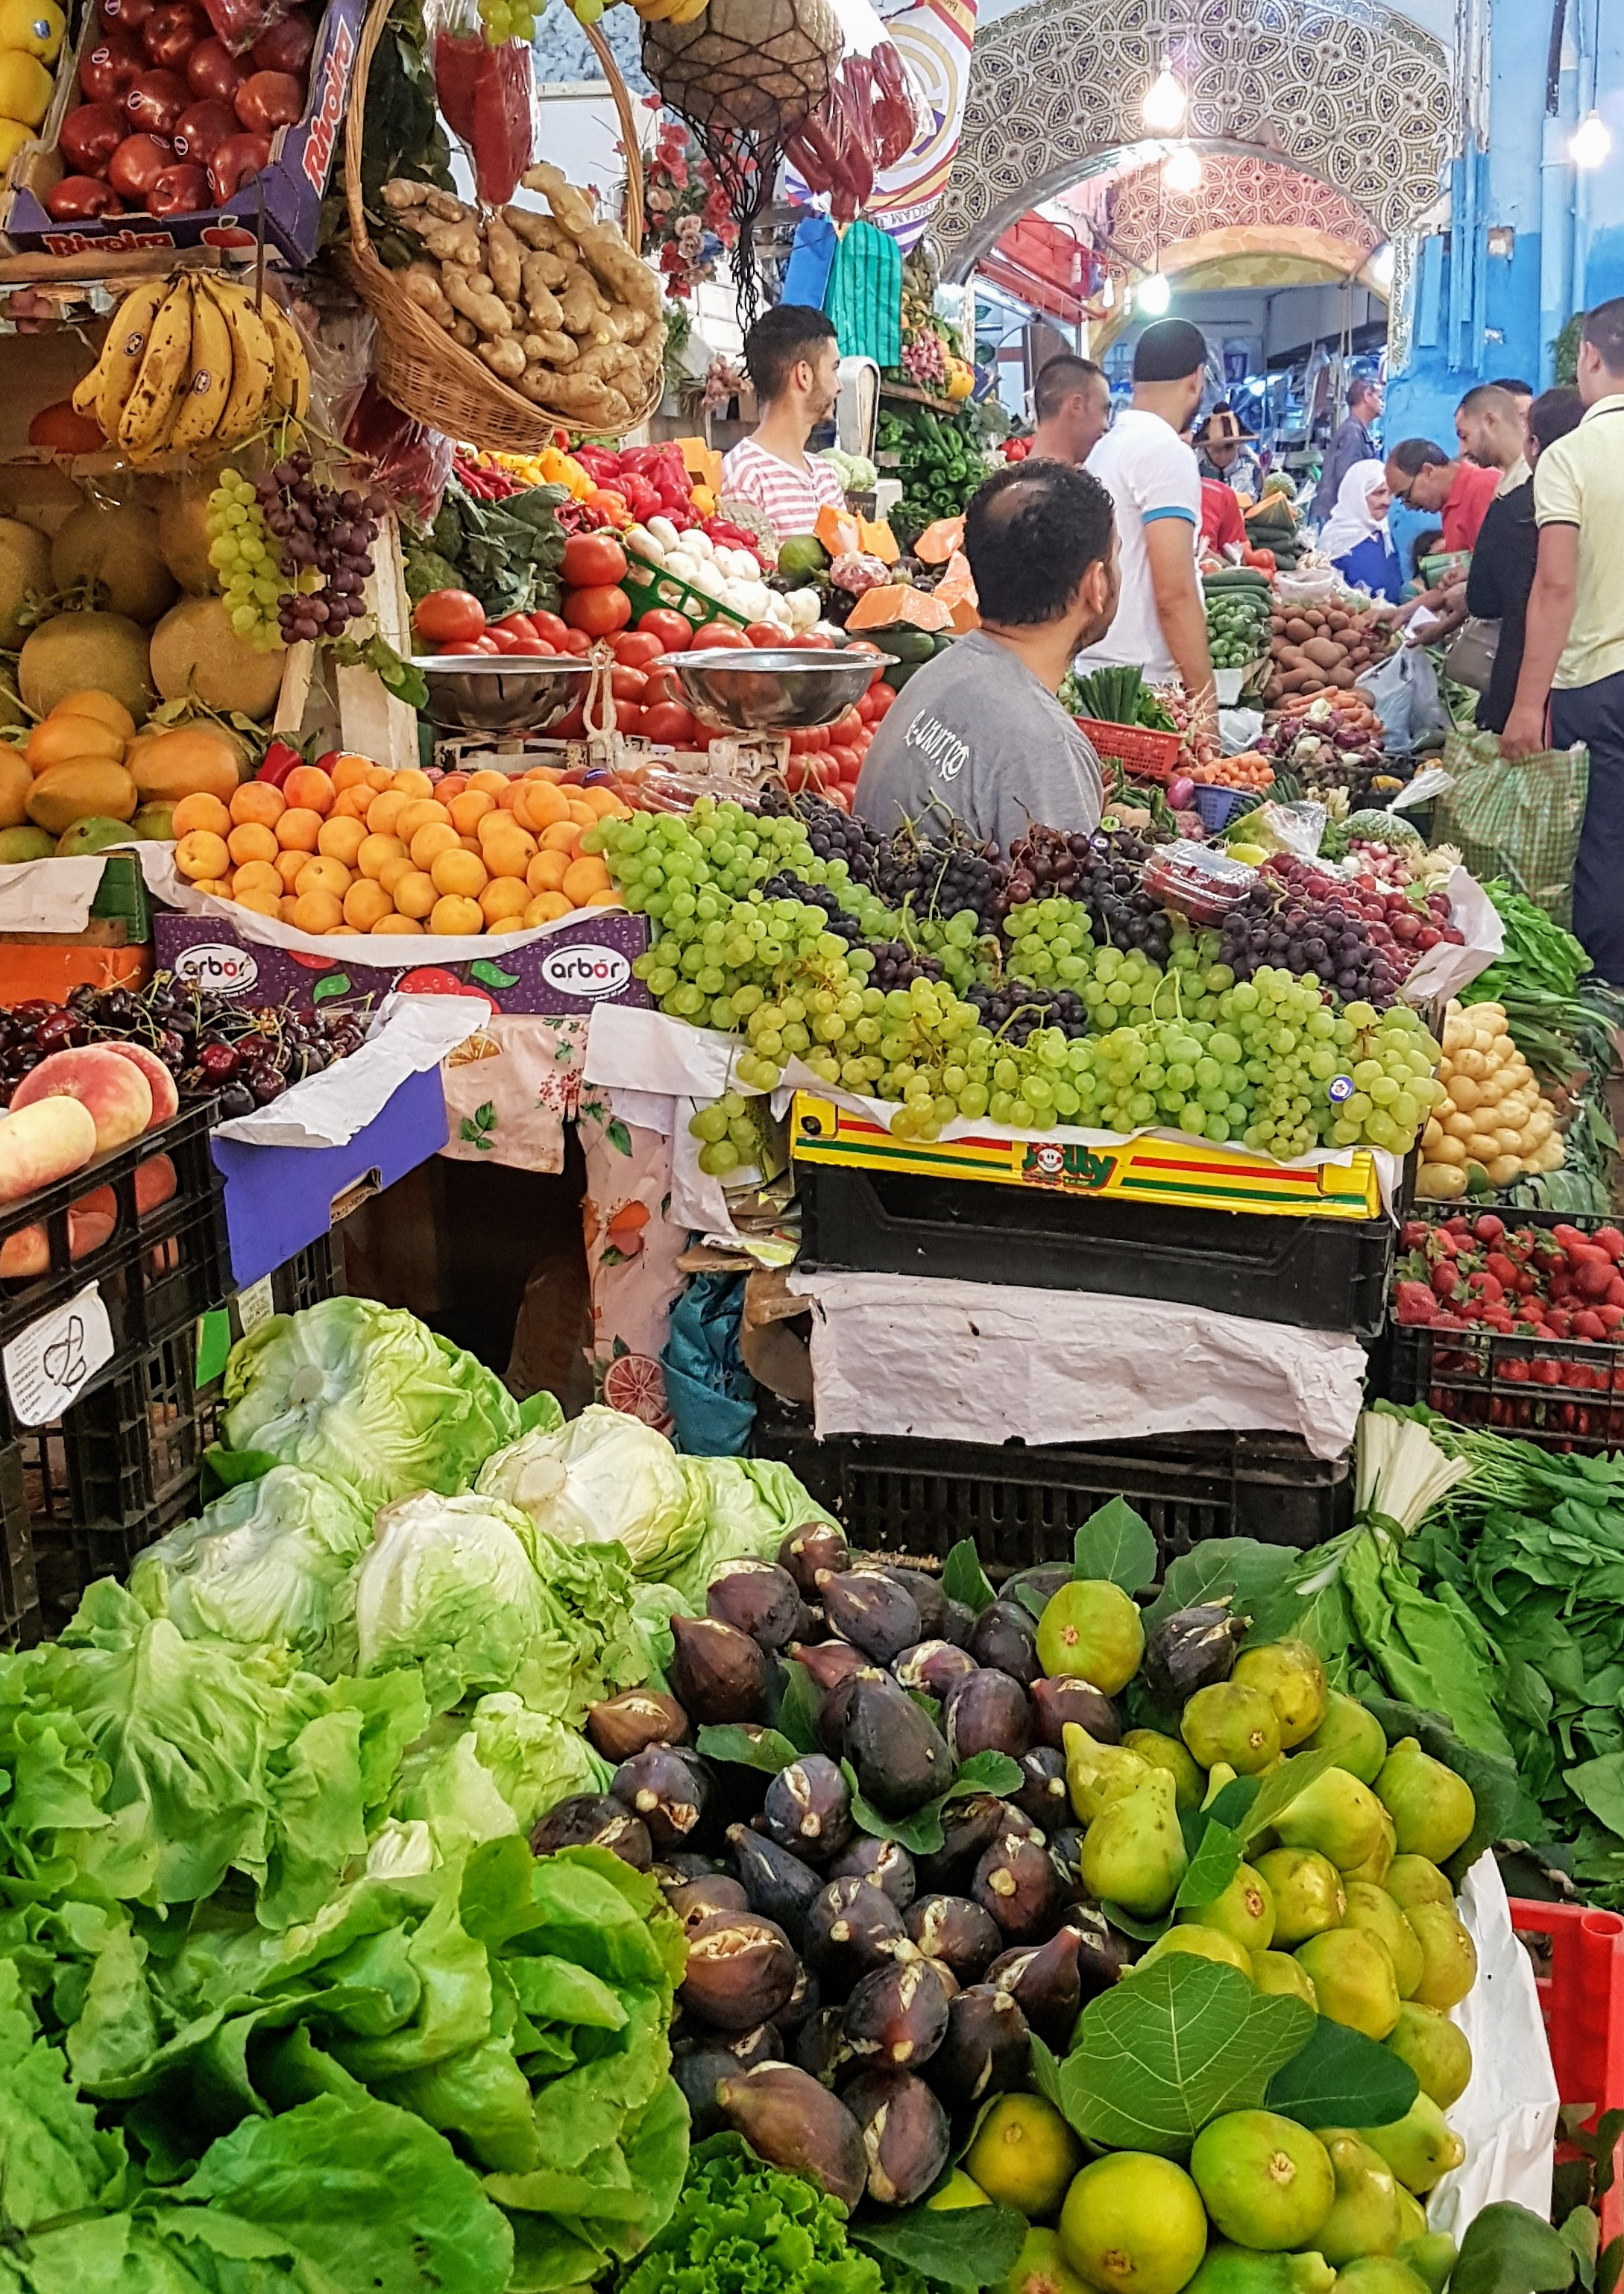 The colourful and vibrant marketplace